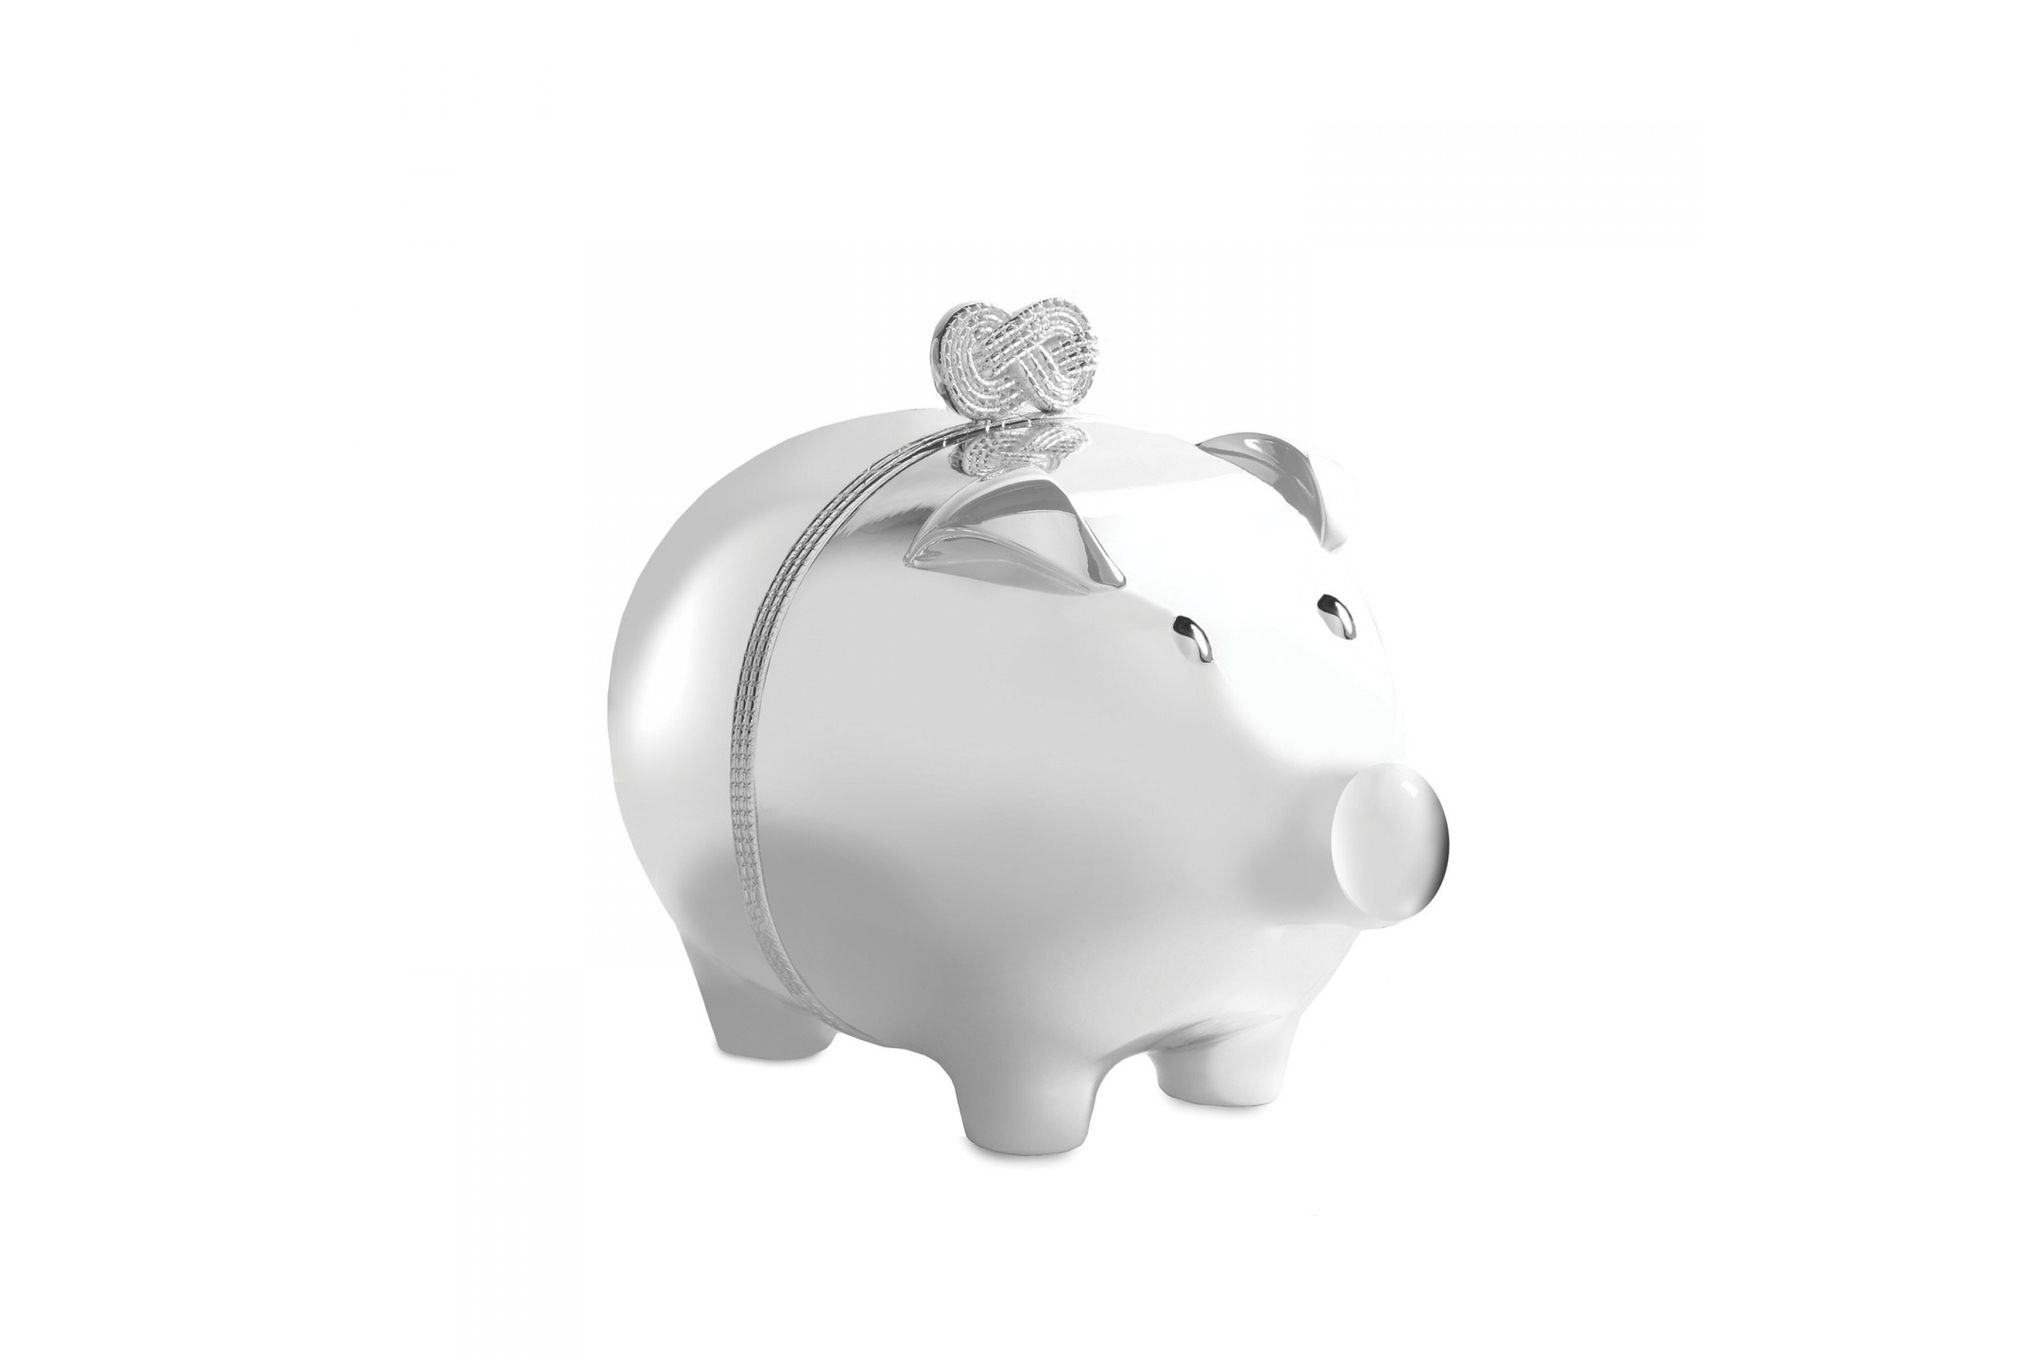 Vera Wang for Wedgwood Gifts & Accessories Piggy Bank Infinity thumb 1